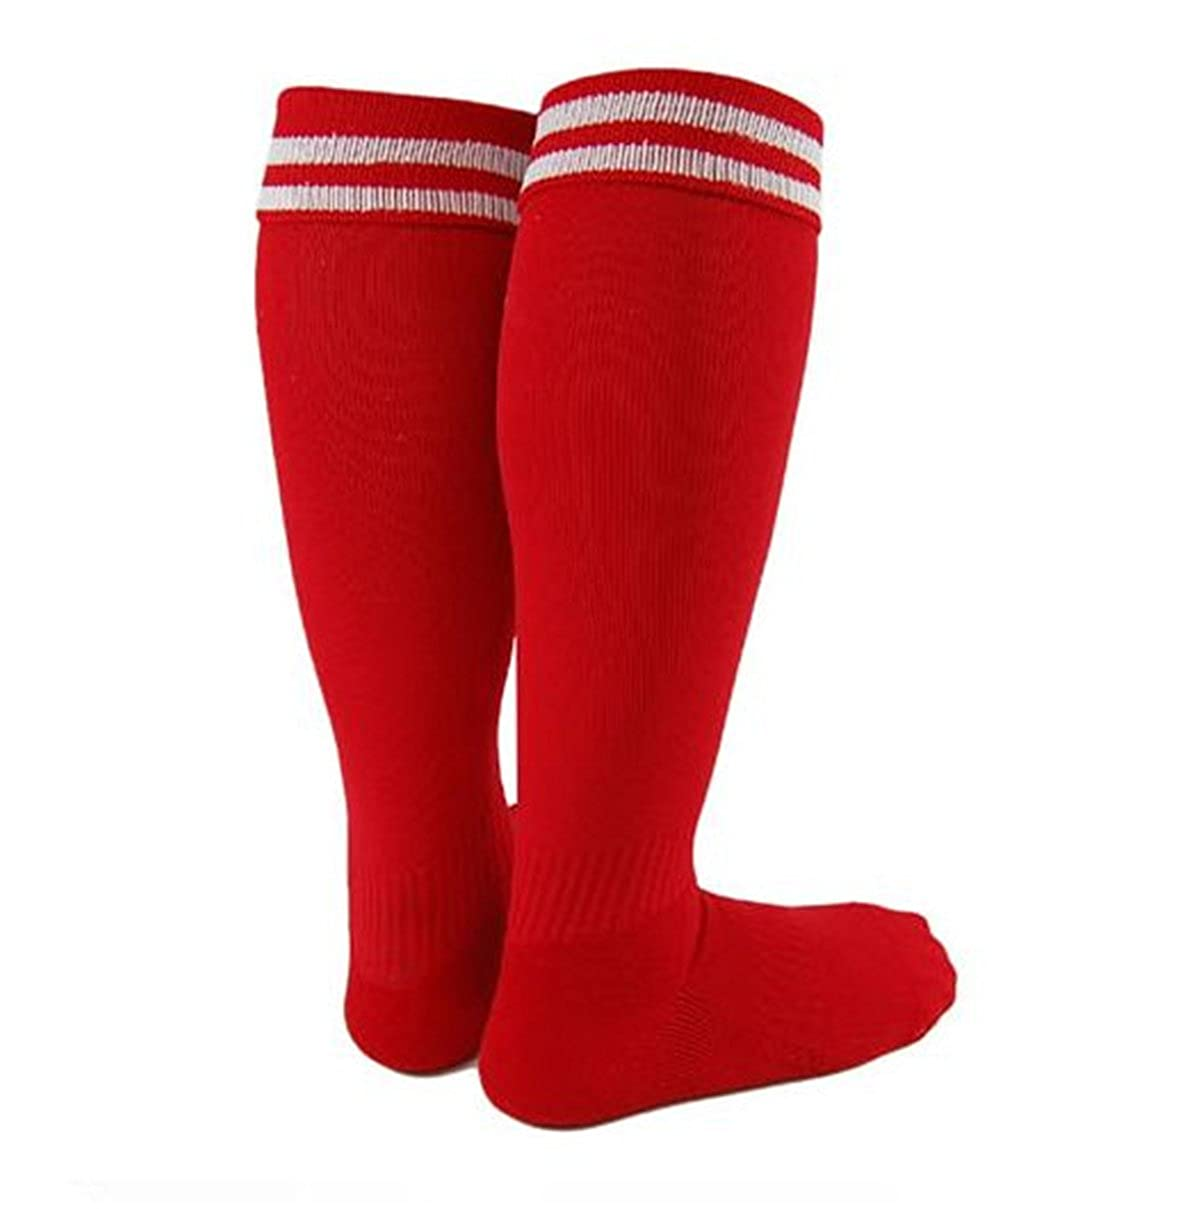 Lian LifeStyle Boy and Girl 1 Pair Knee High Sports Socks for Baseball/Soccer